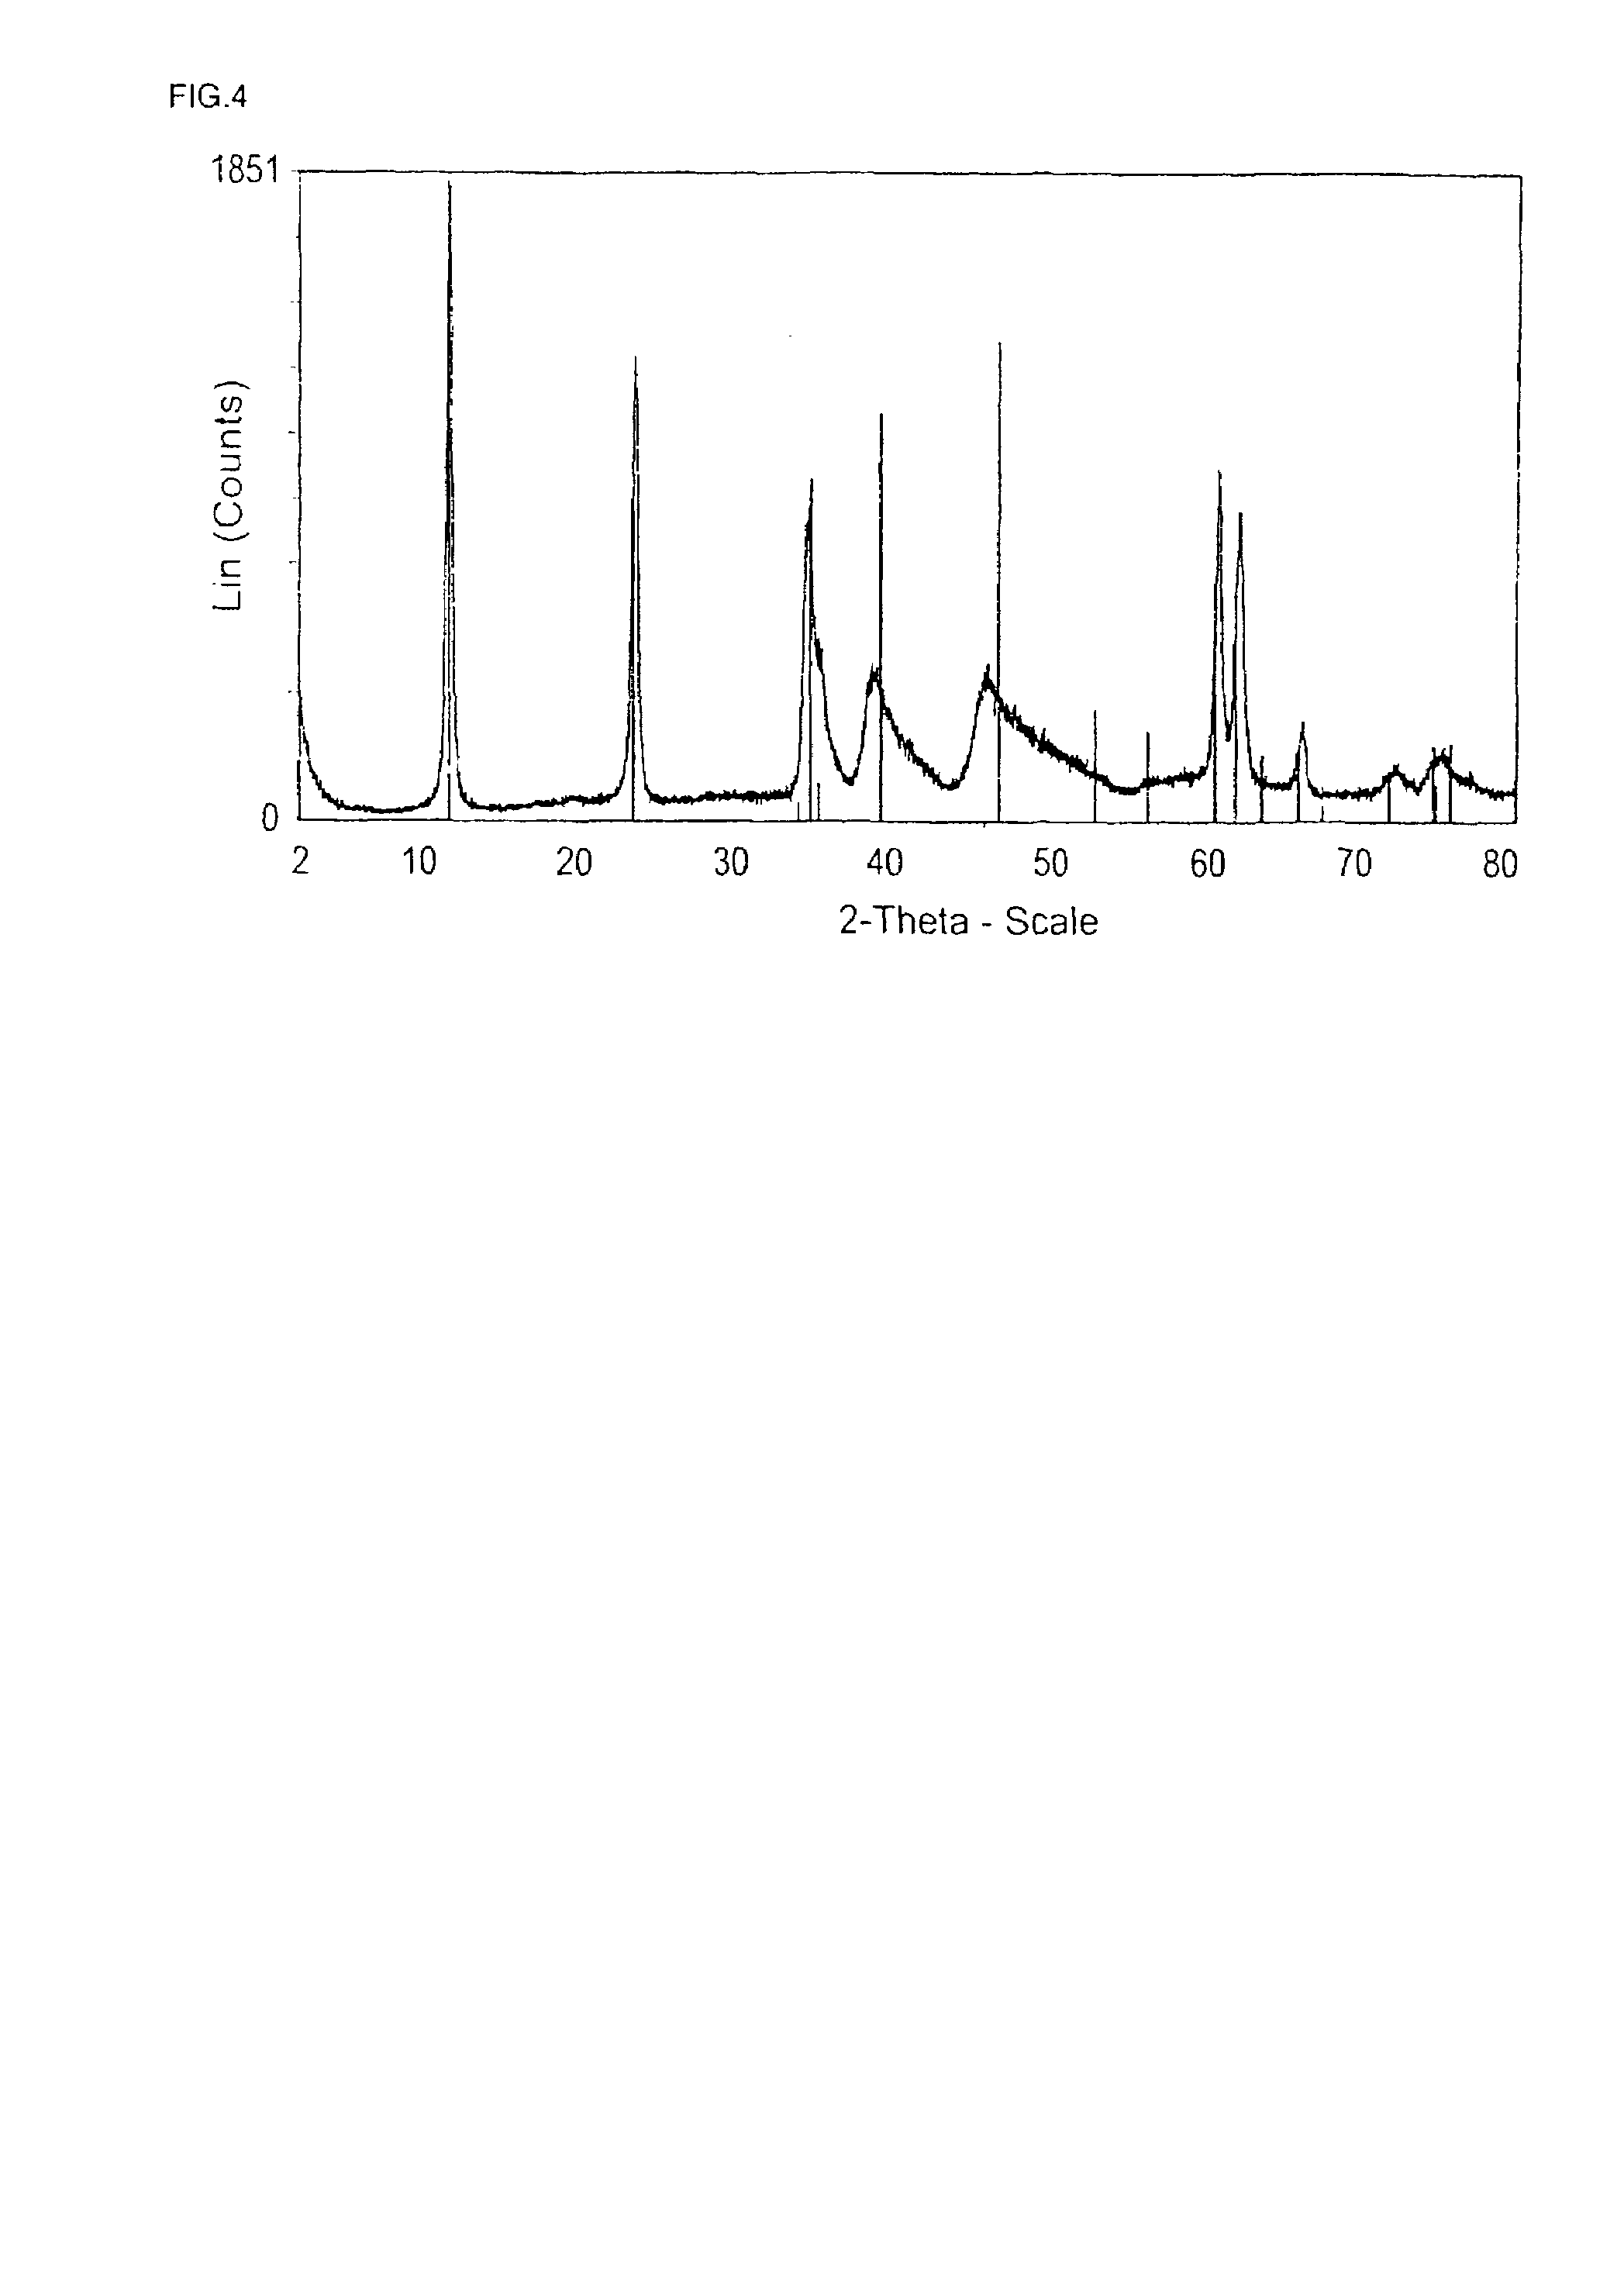 catalysis by hydrotalcite materials Nanostructured mg-al hydrotalcite as catalyst for fine chemical synthesis of fine chemicals by a solid catalyst can result in materials testing metal.